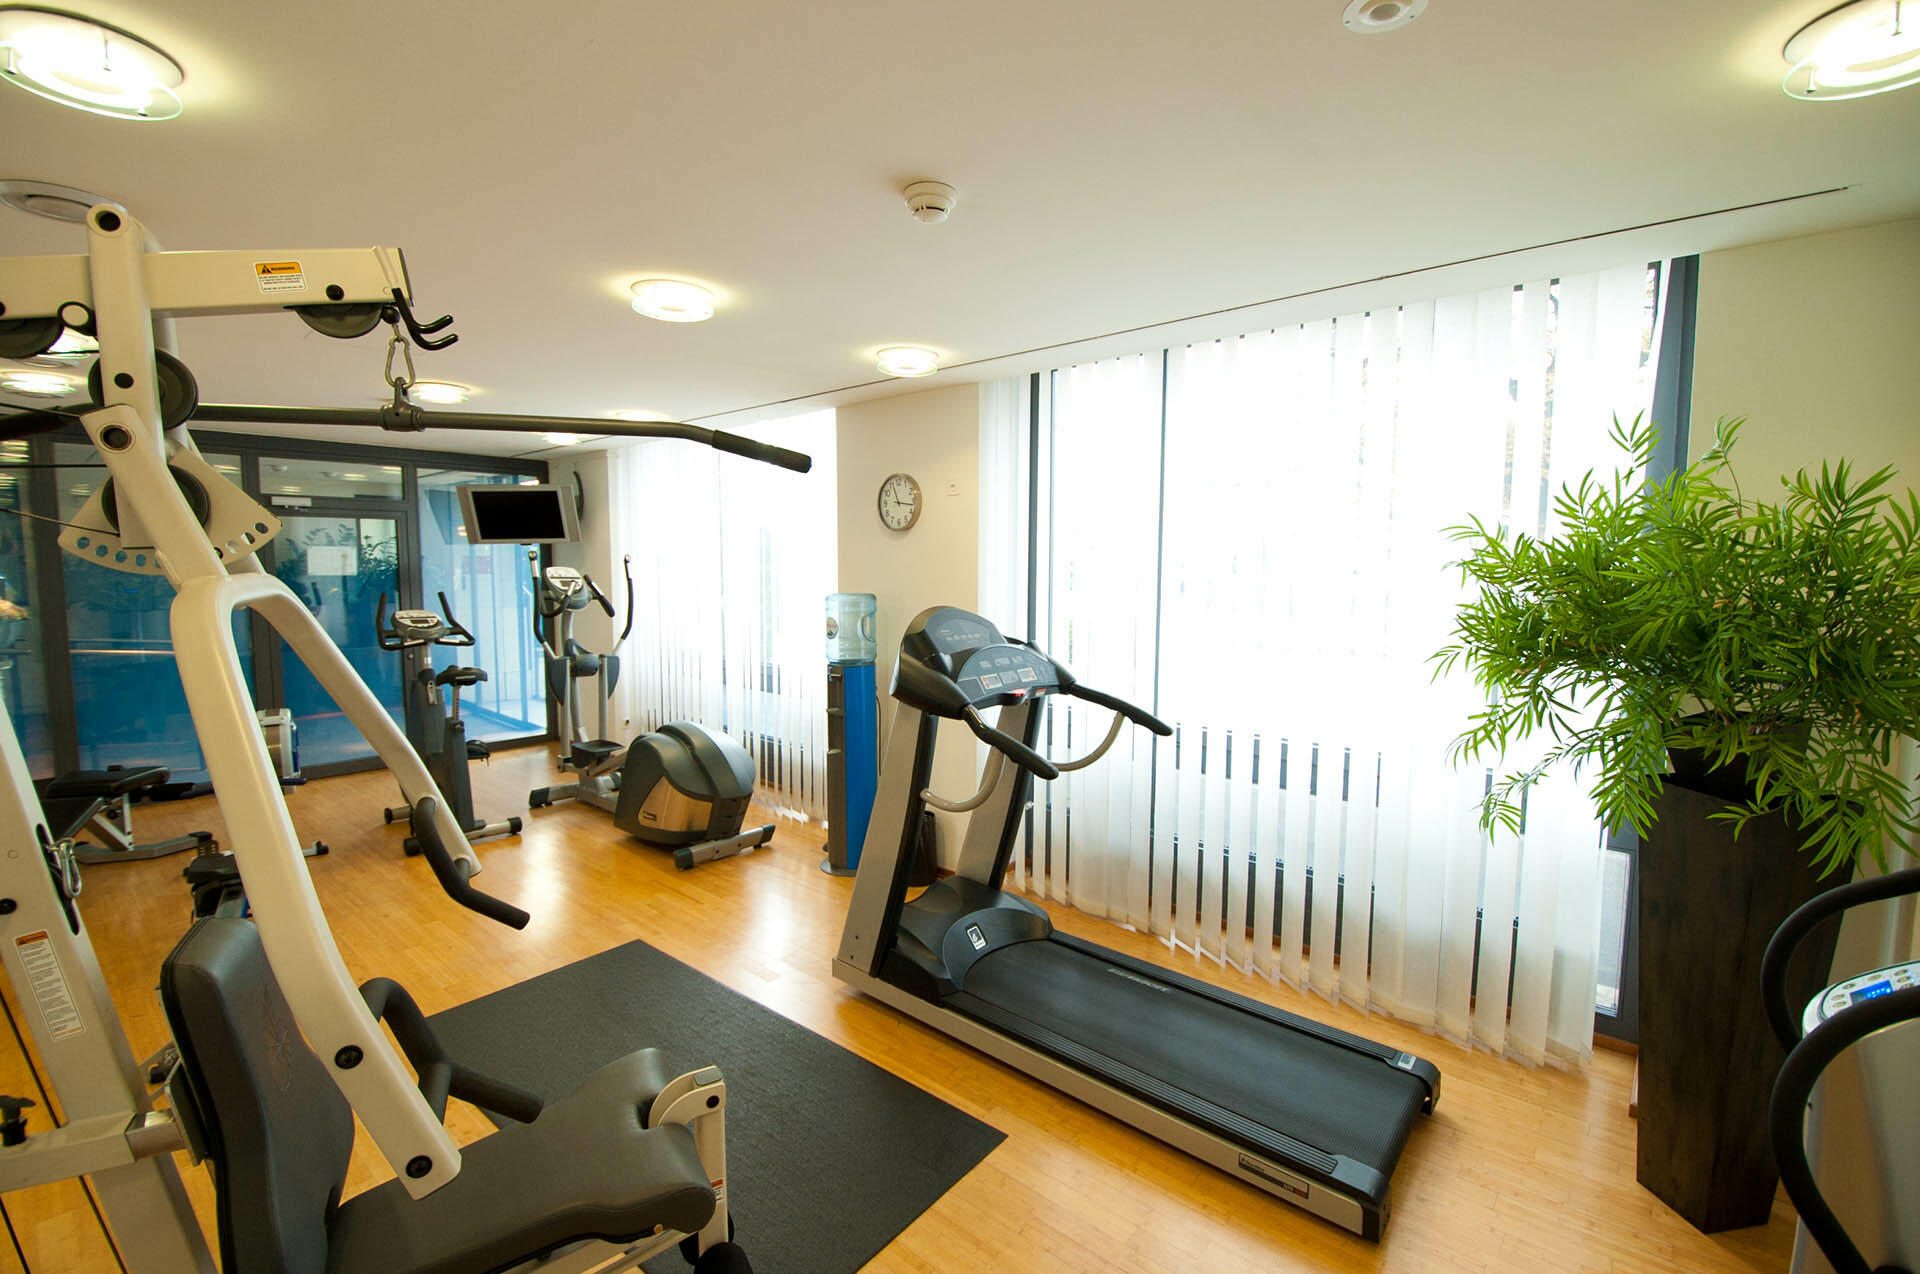 Fitness Centre at Central Plaza Hotel Zurich